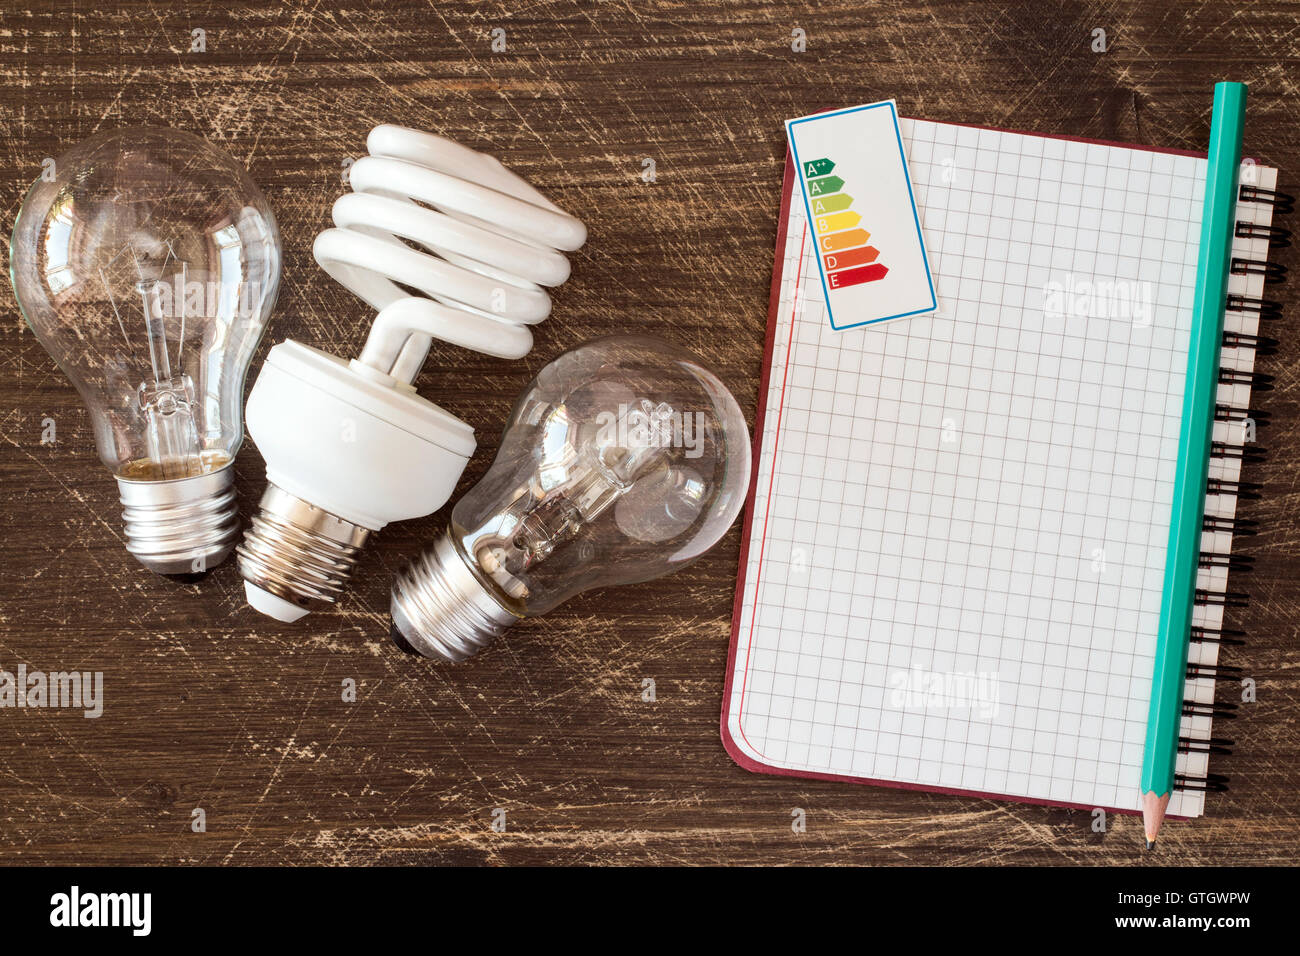 Three different light bulbs and notebook with energy efficiency label - Stock Image